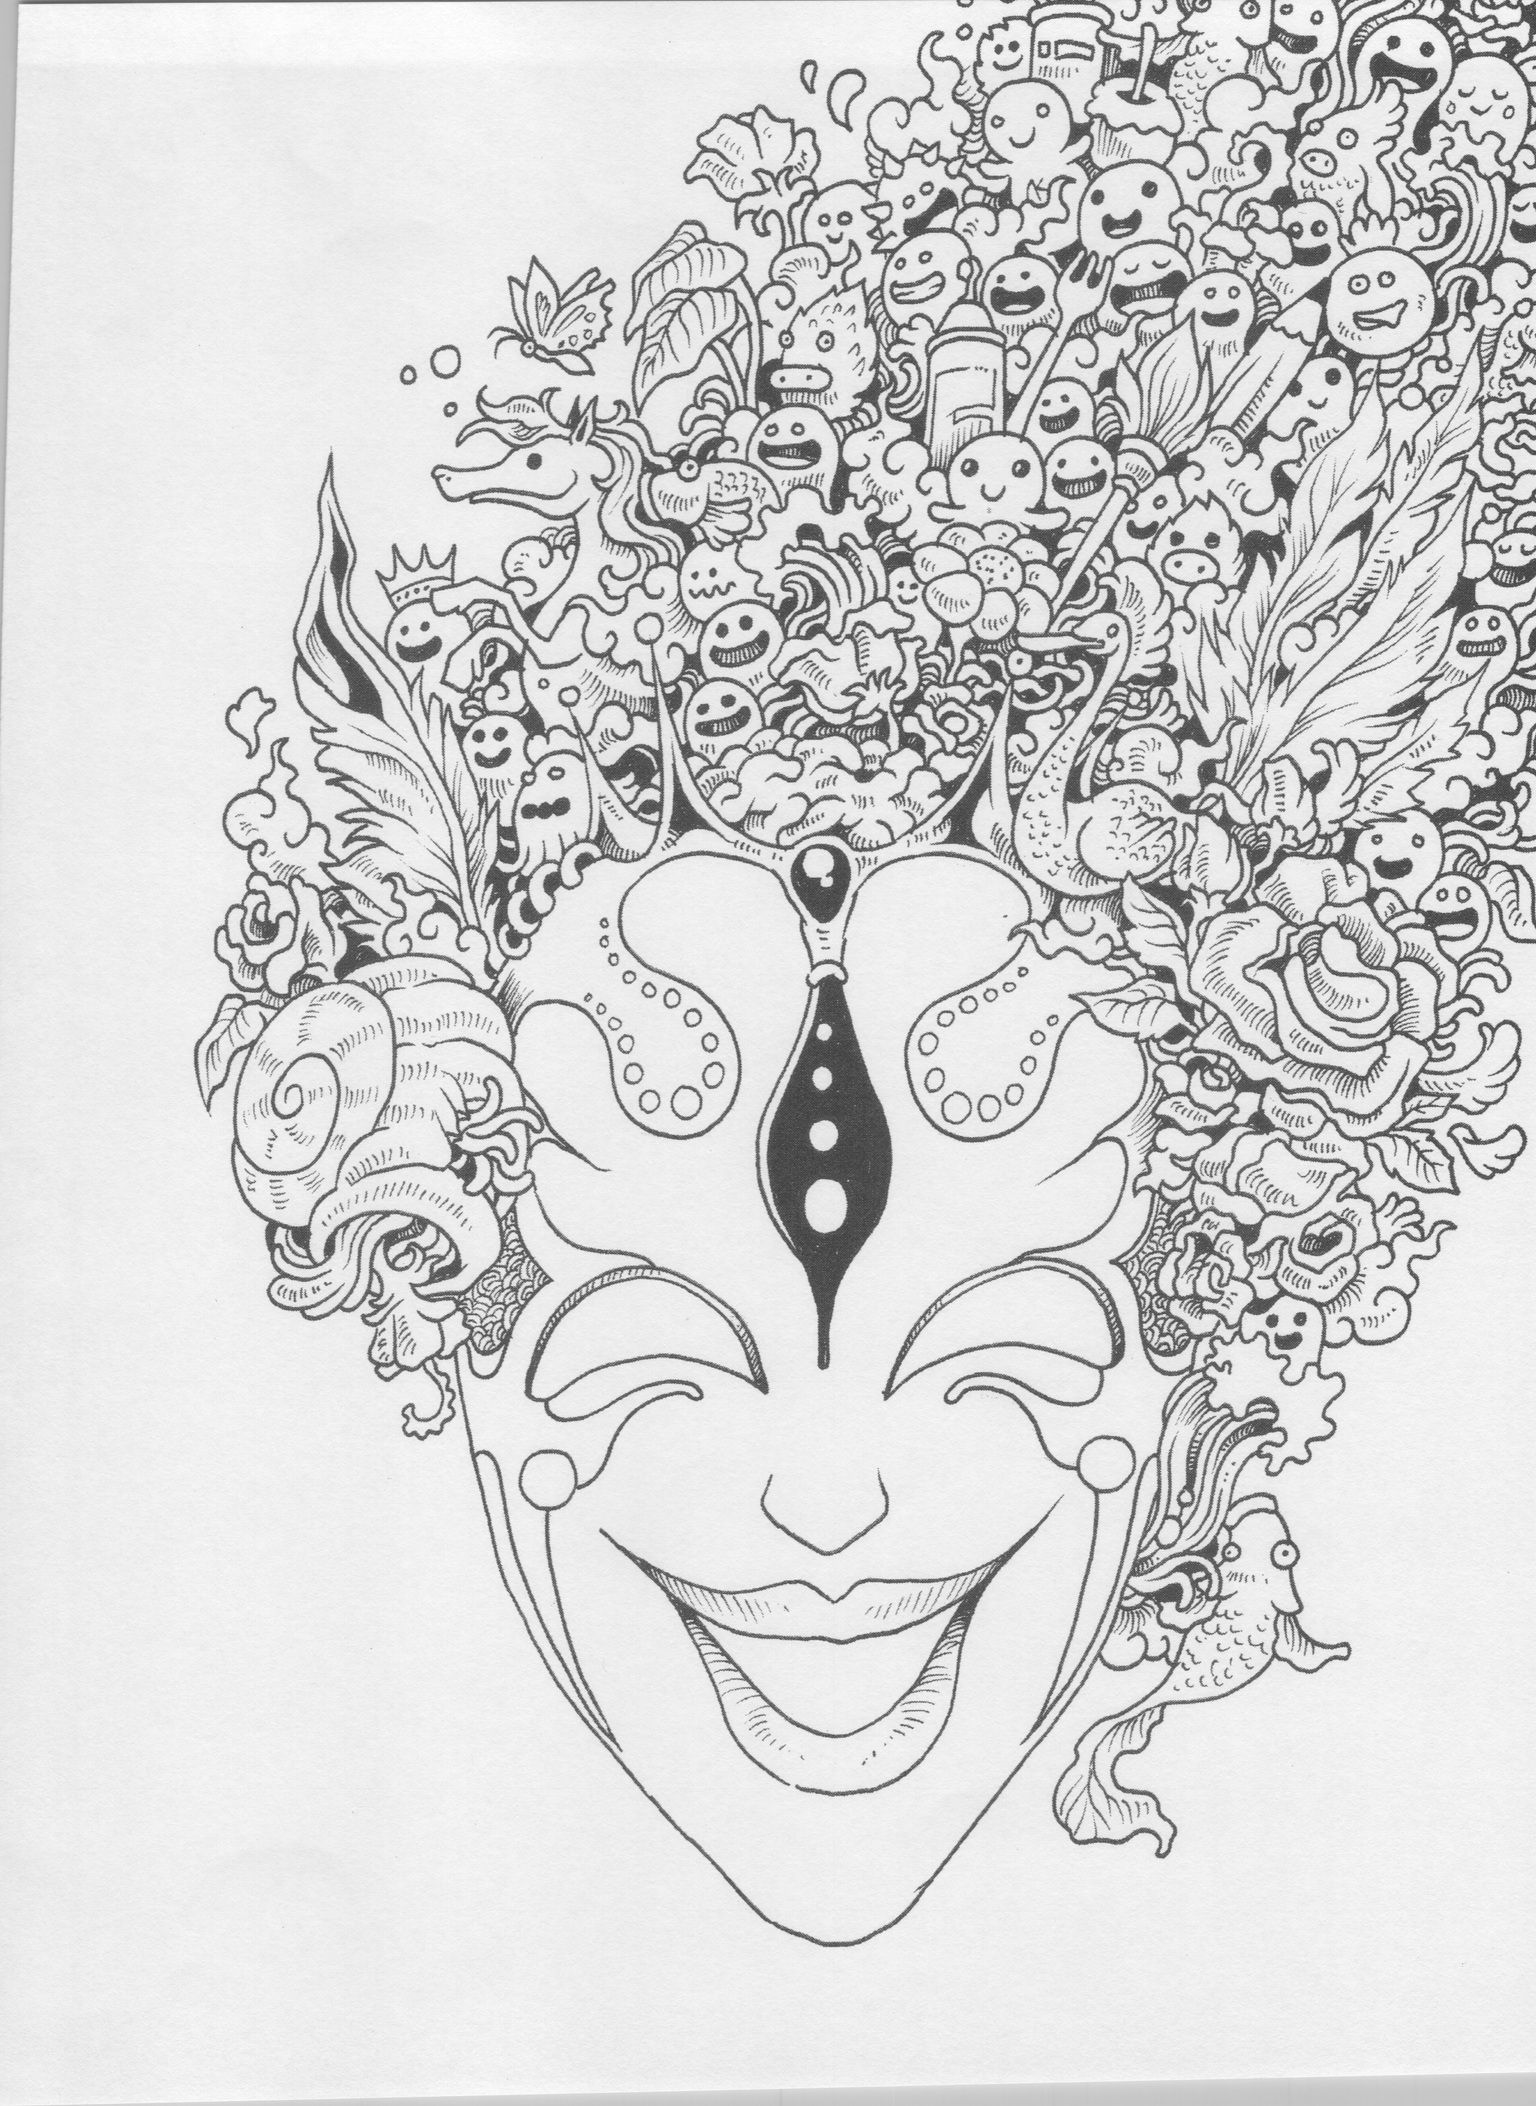 Pin by vishva shah on doddle | Animal coloring pages ...